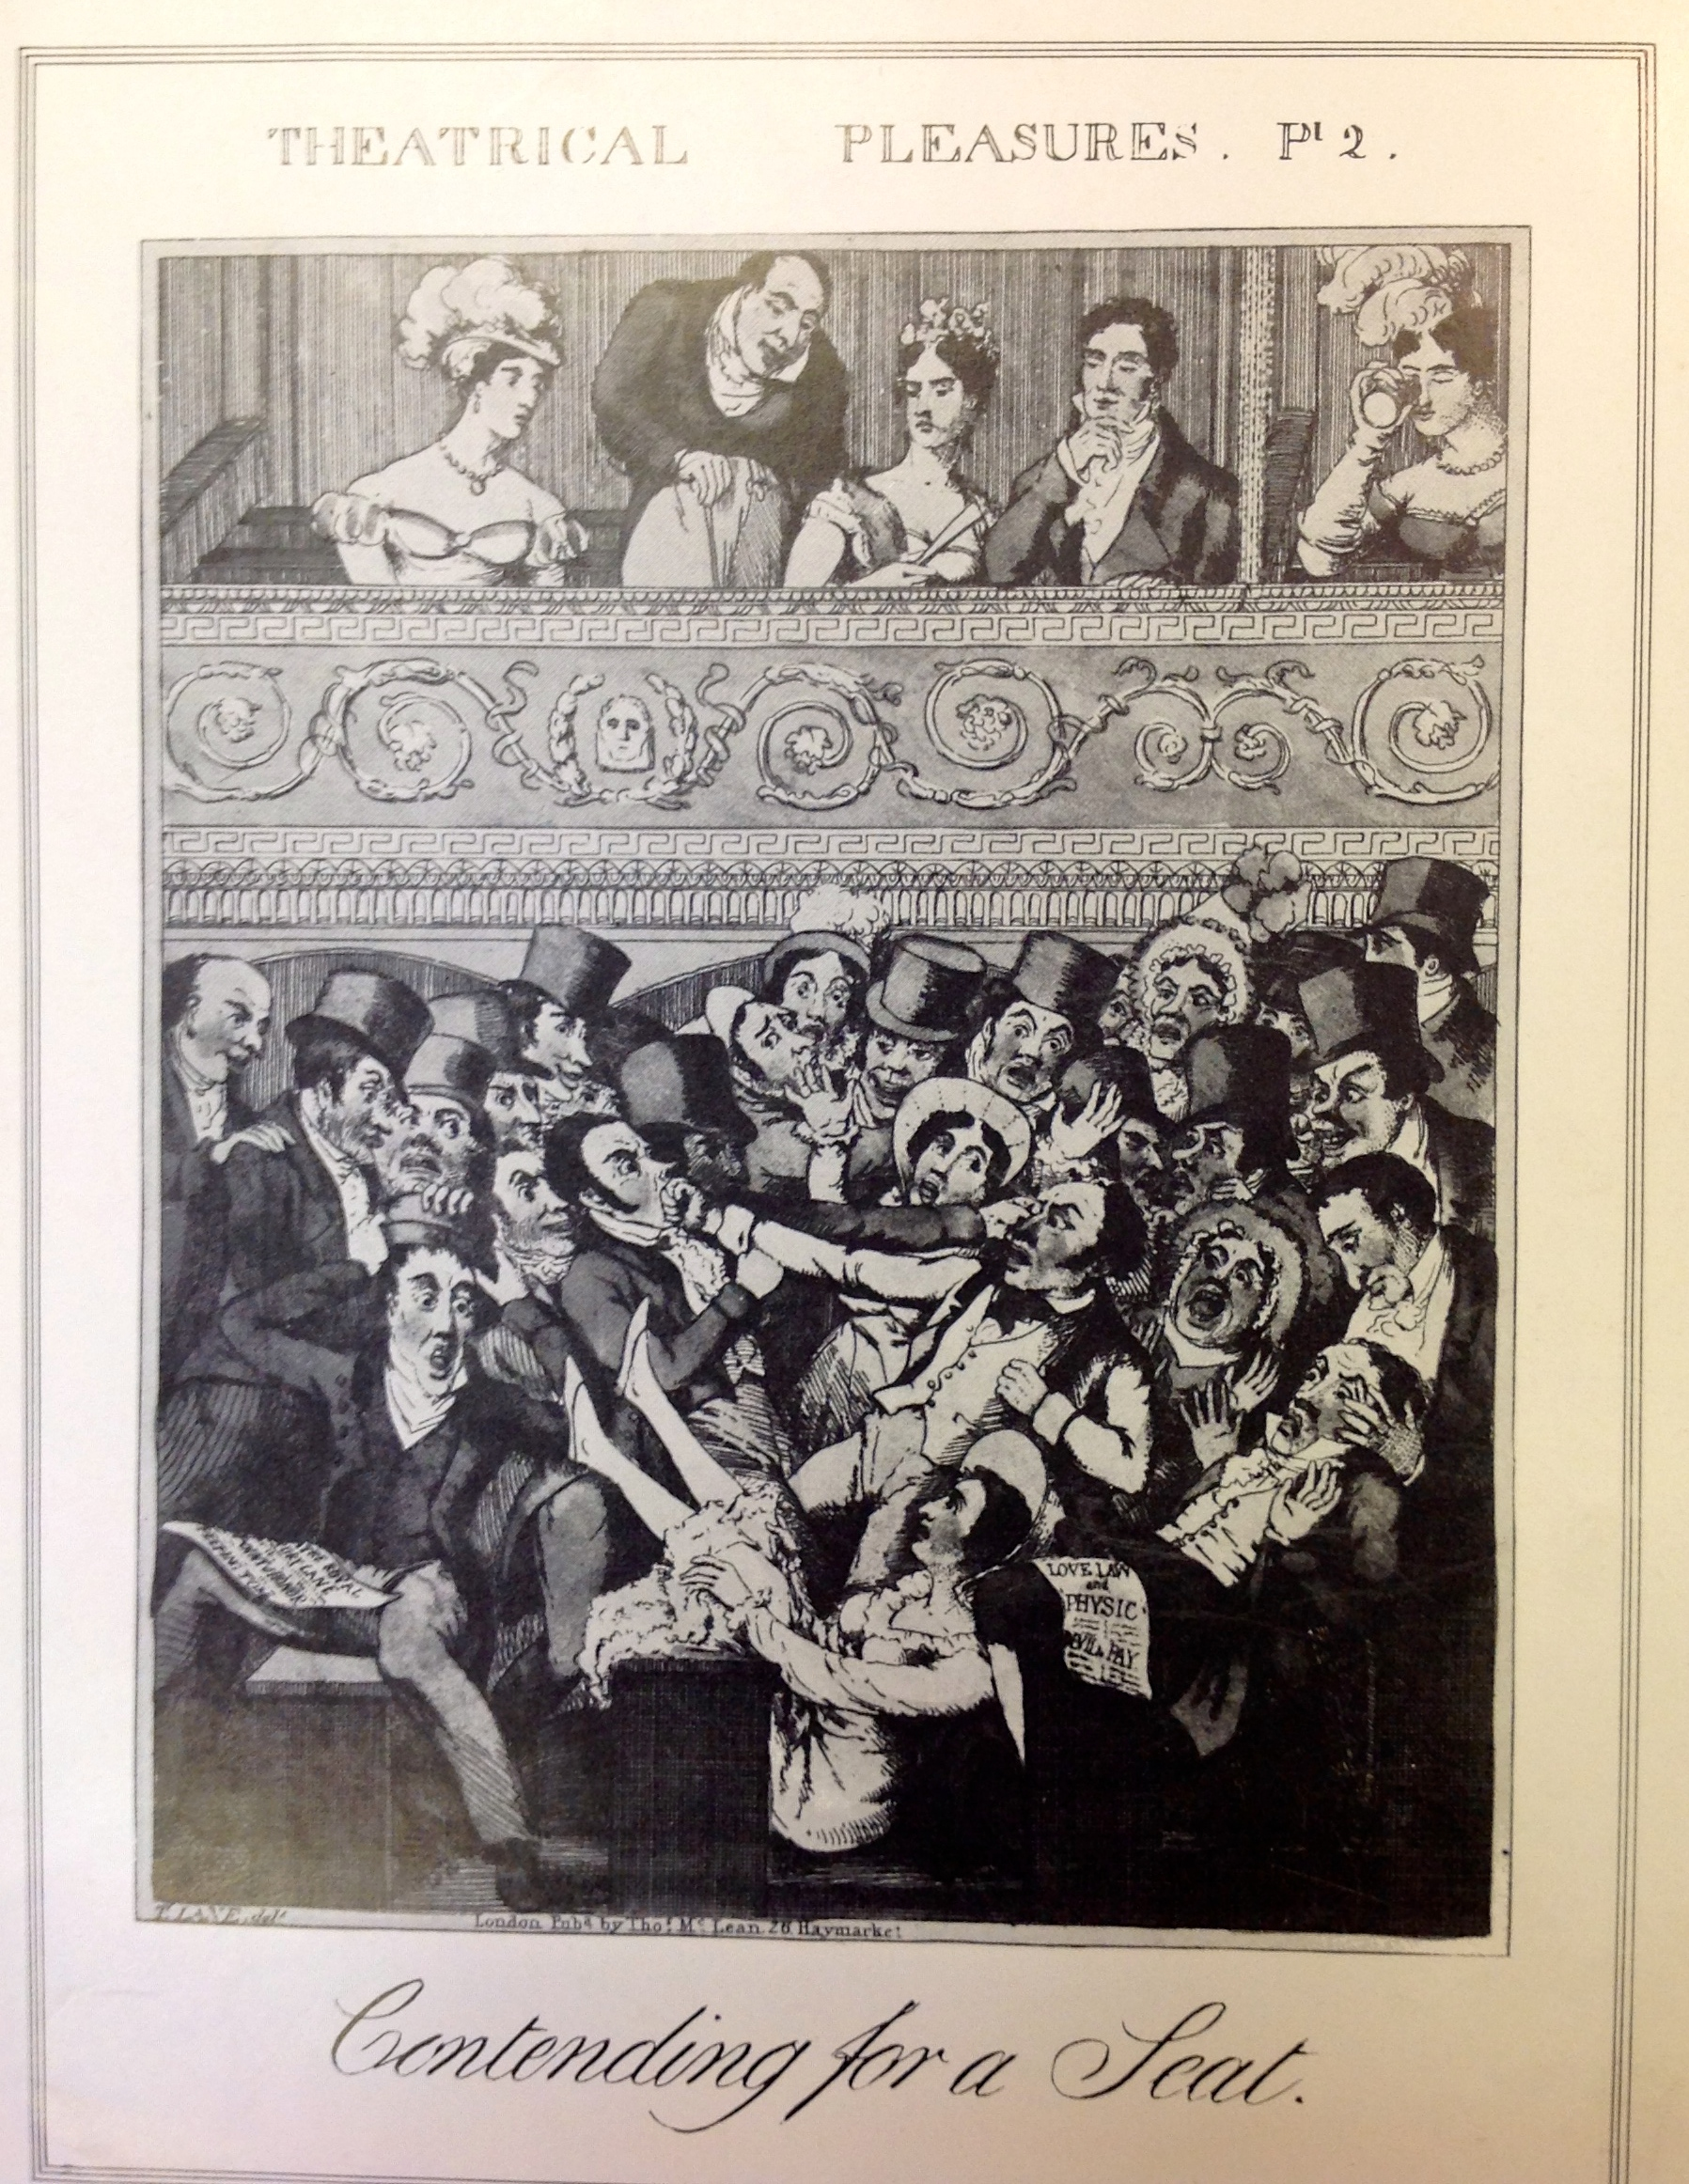 <b>Audience</b>     	</br>A comical depiction of audiences contending for a seat as wealthy patrons look on from their reserved boxes before a performance, published in Theatrical Pleasures.</br><br/><b>Source: </b><i>Used with permission from the University of Bristol Theatre Collection.</i>